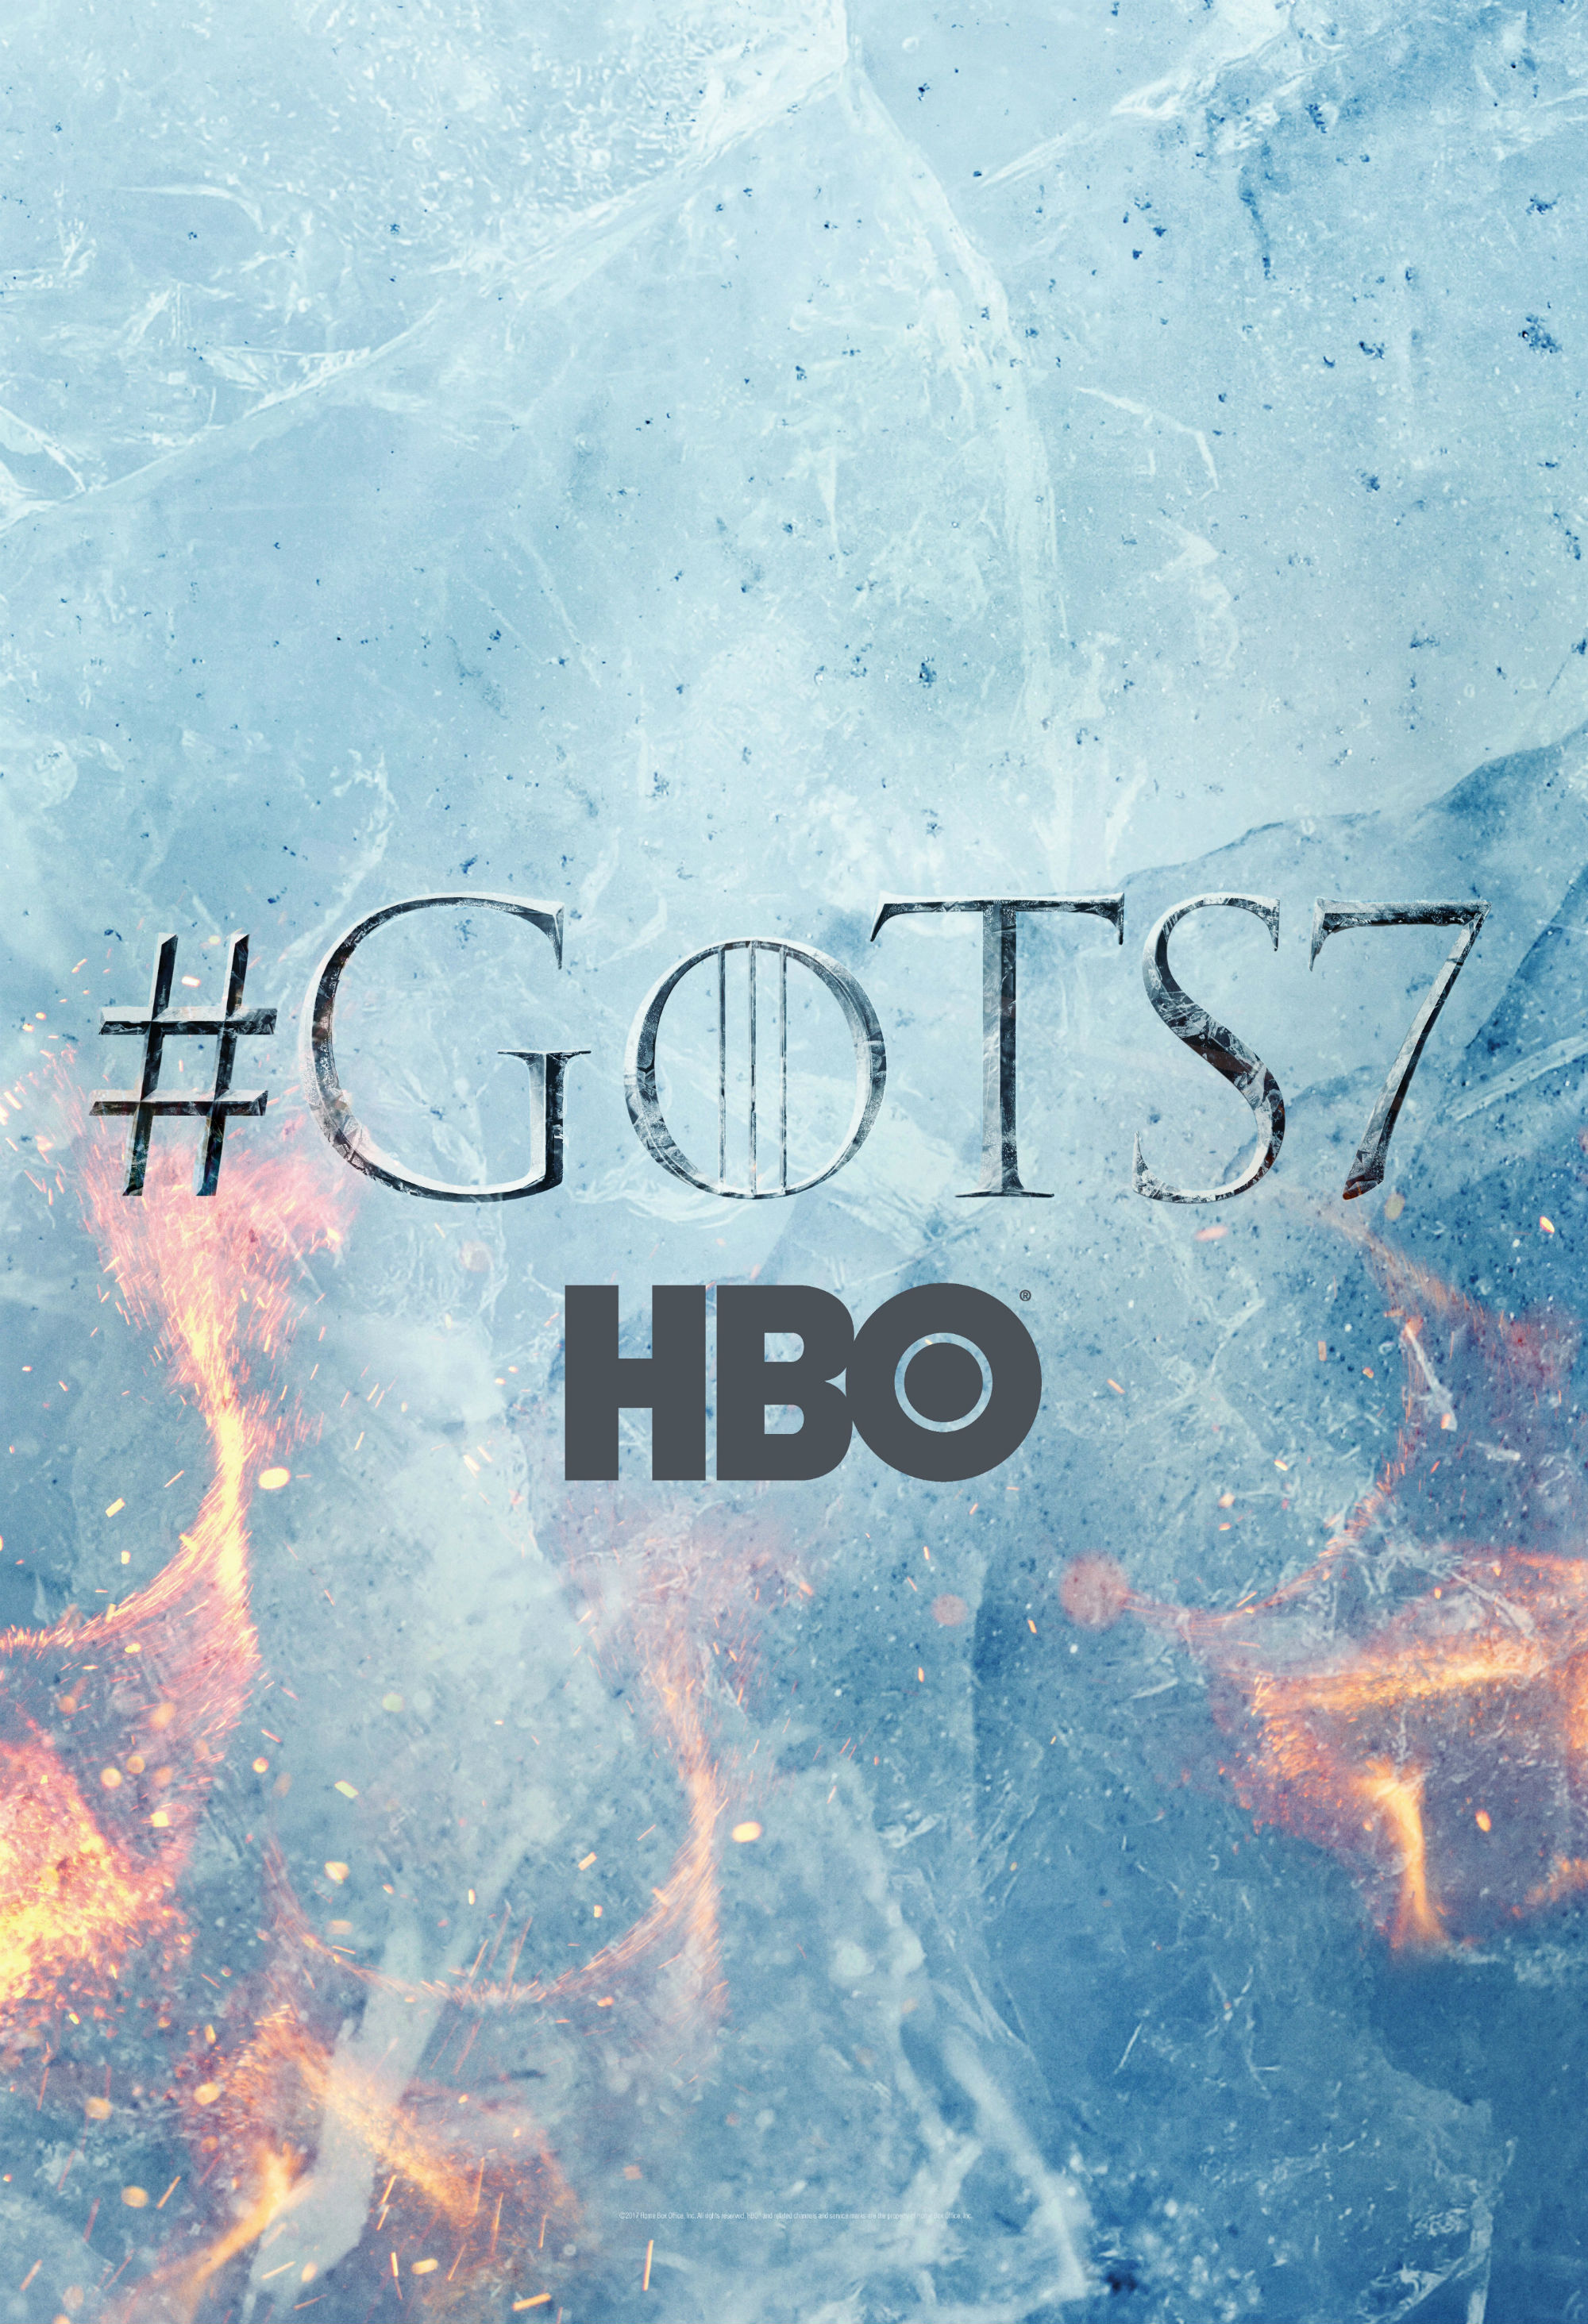 blog-2017-09-03-game-of-thrones-season-7-hints-at-a-battle-of-fire-and-ice-banner